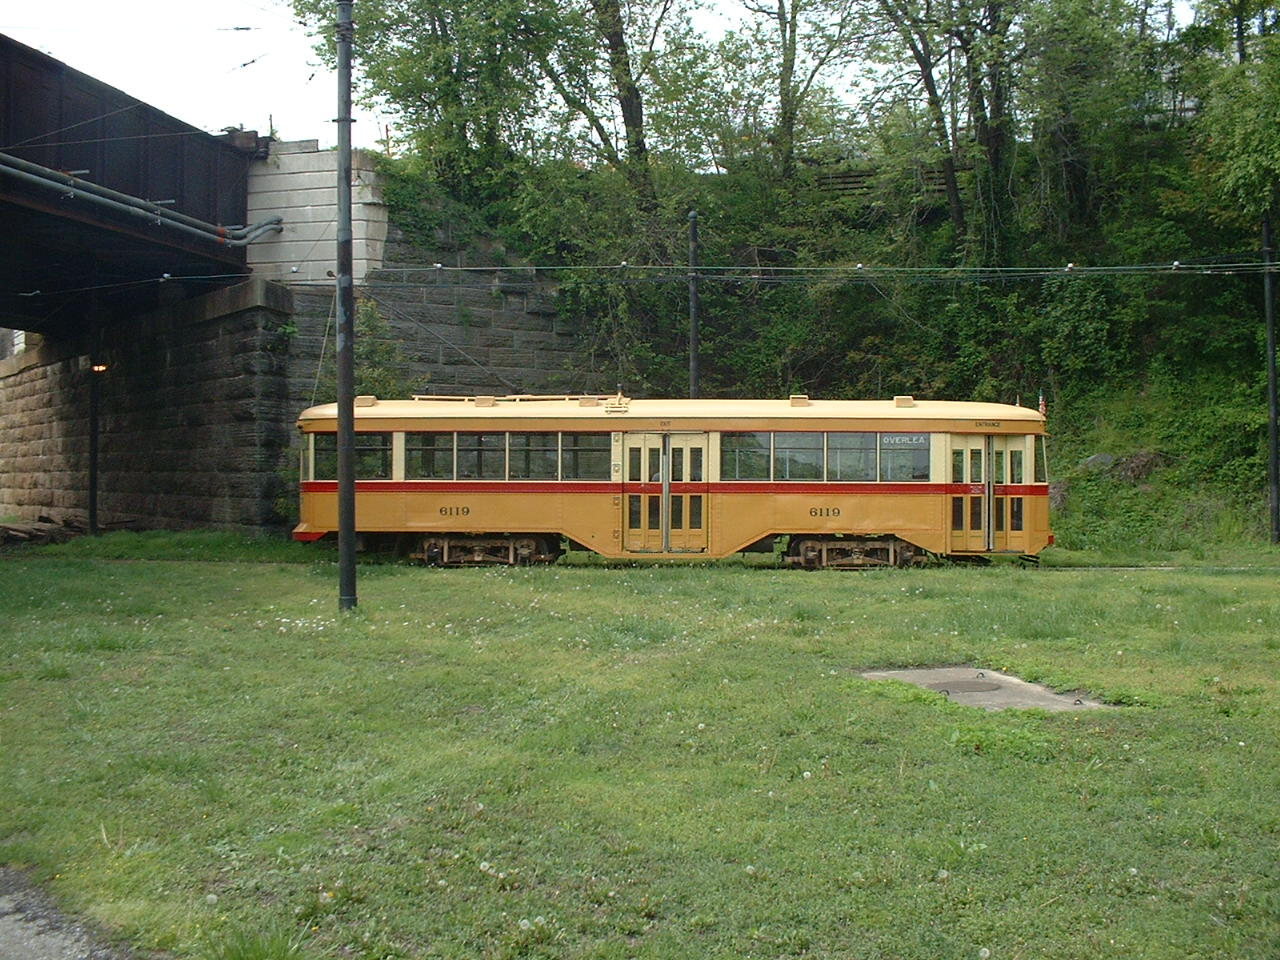 (300k, 1280x960)<br><b>Country:</b> United States<br><b>City:</b> Baltimore, MD<br><b>System:</b> Baltimore Streetcar Museum <br><b>Car:</b>  6119 <br><b>Photo by:</b> Dan Lawrence<br><b>Date:</b> 4/27/2002<br><b>Notes:</b> BSM 6119 at North Avenue Loop<br><b>Viewed (this week/total):</b> 5 / 3363